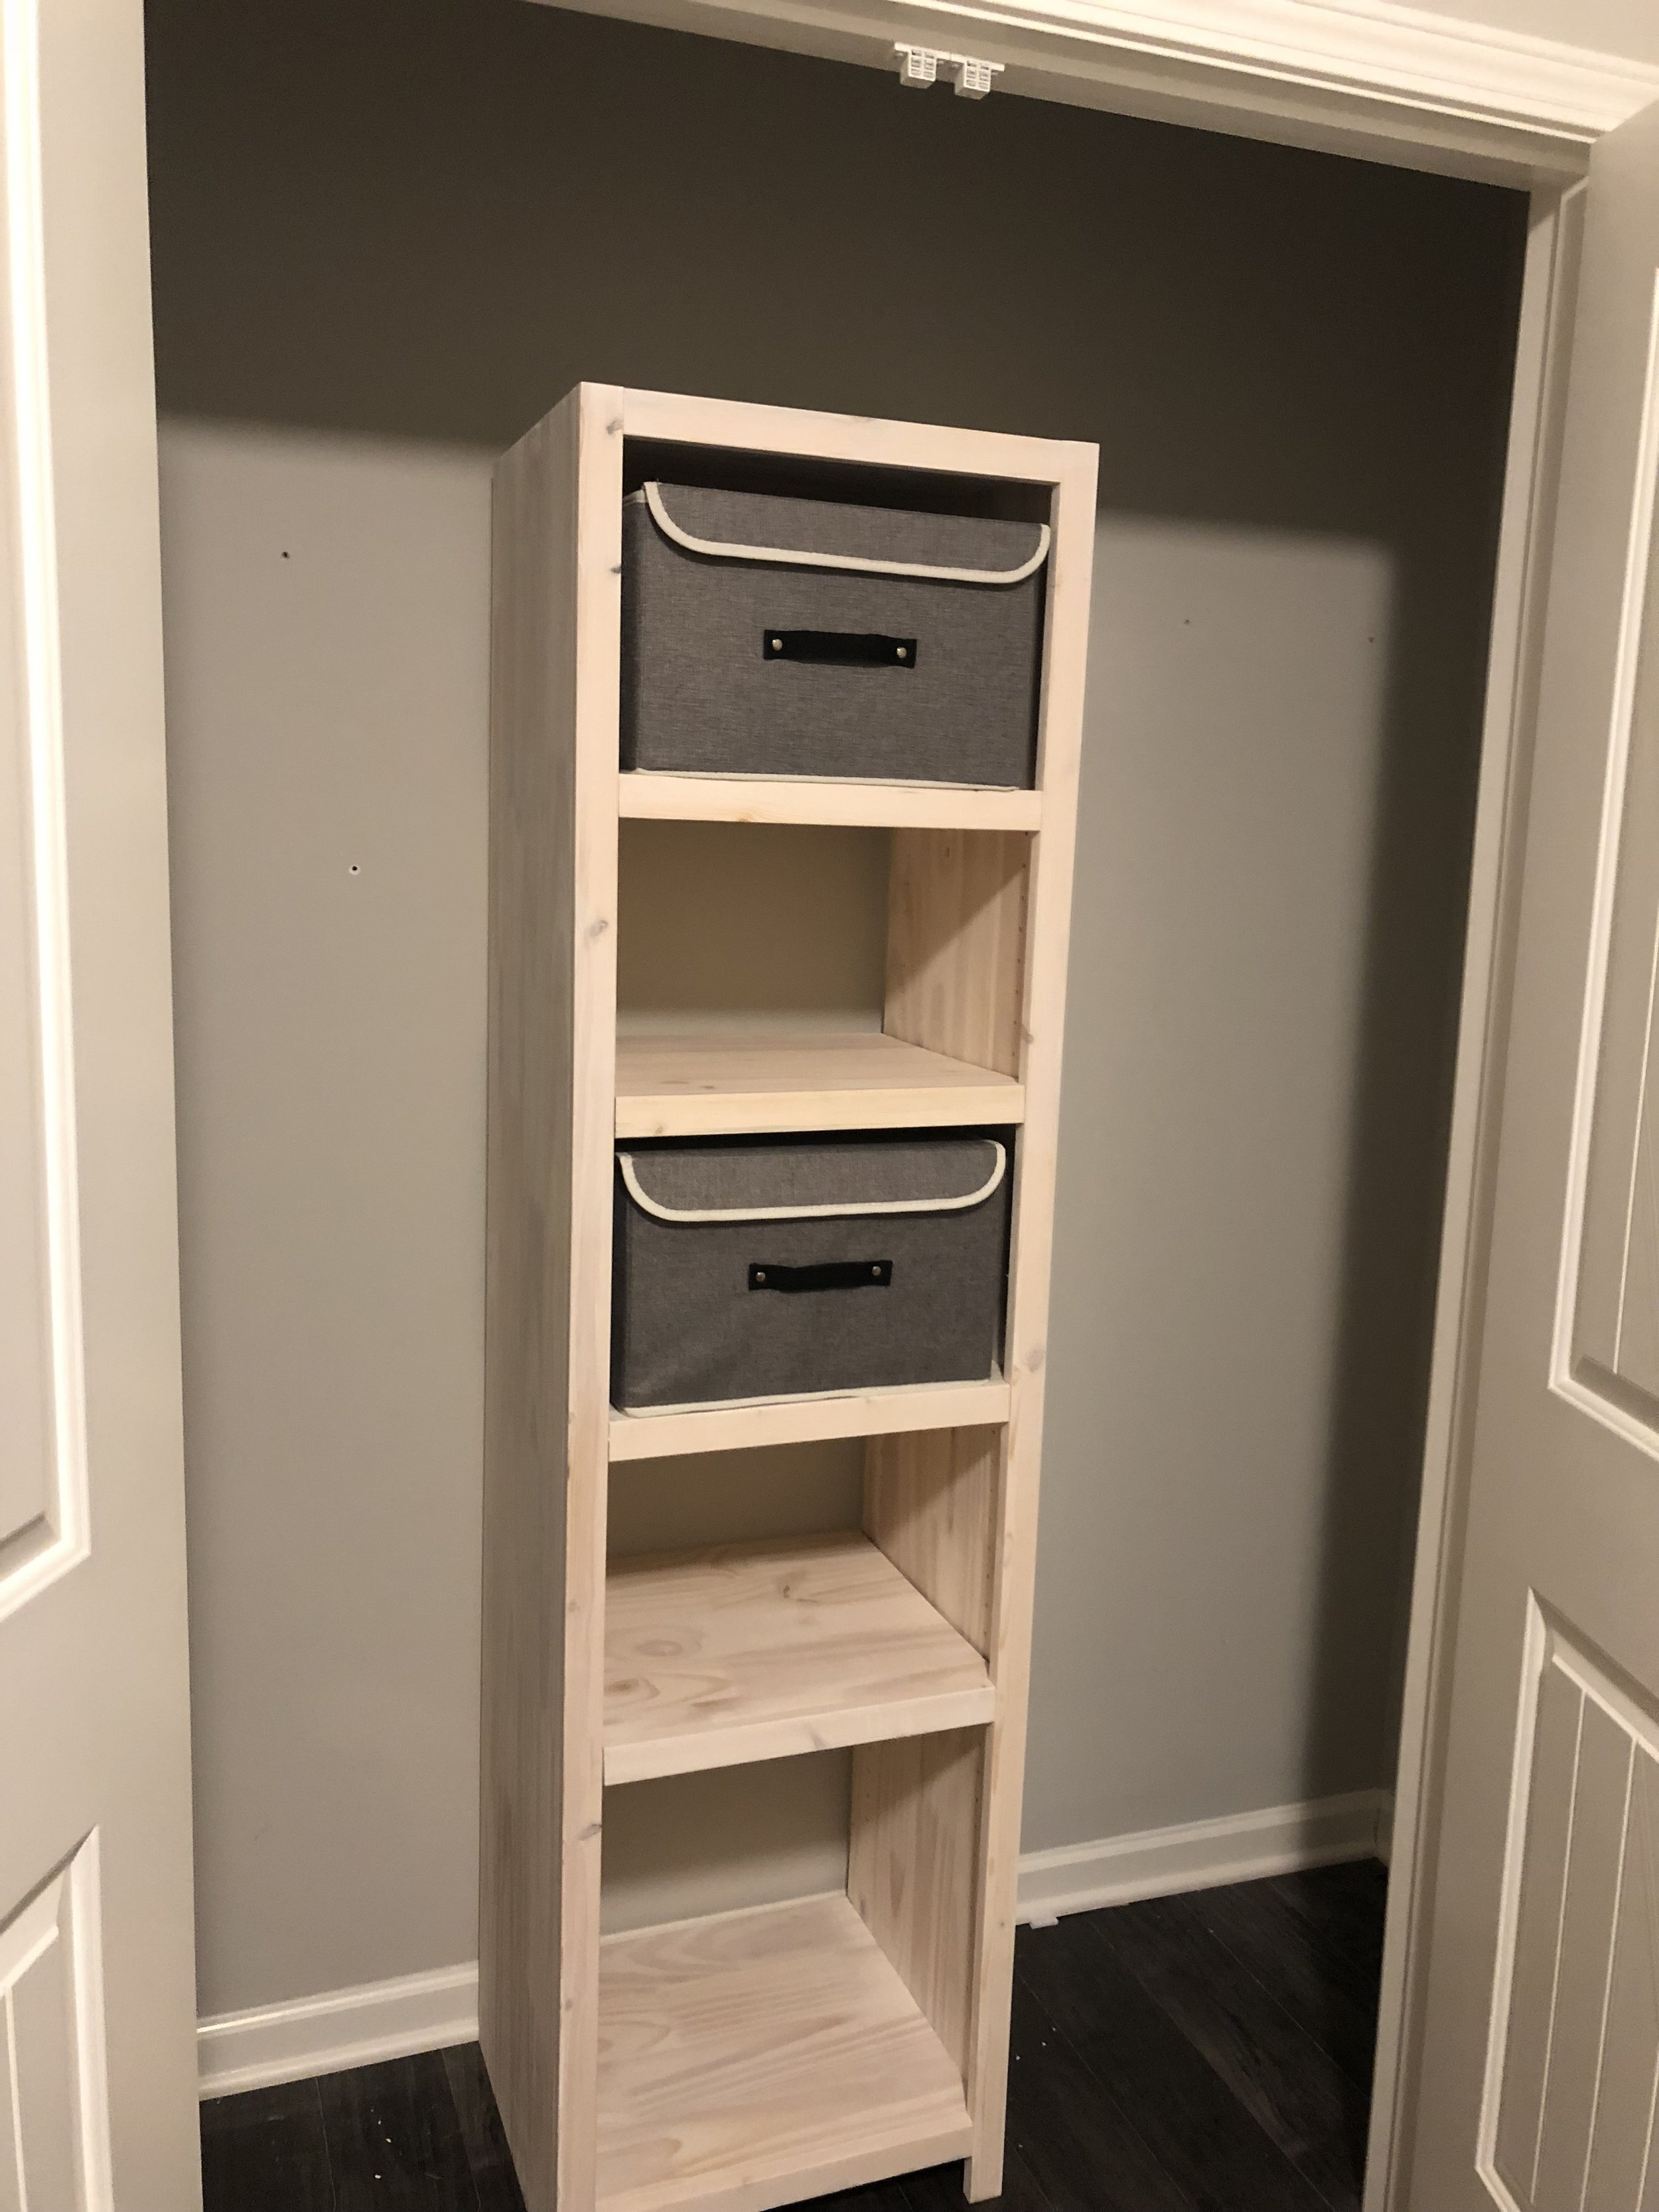 We couldn't resist. - With the shelf unit mounted, we placed the remaining shelves into position and adjusted things to fit the fabric storage we had chosen.